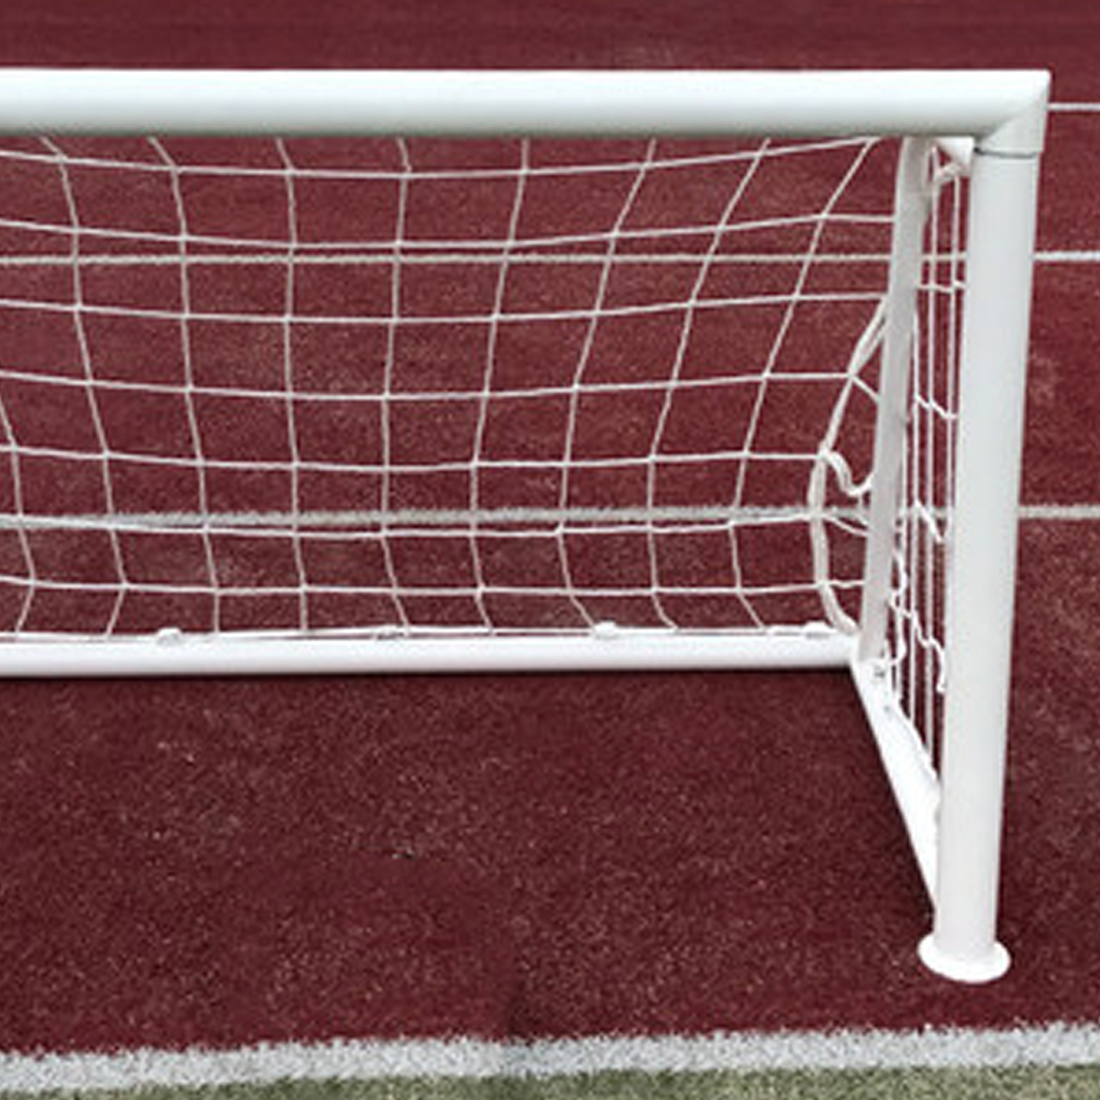 Soccer Ball Goal Net Football Nets Polypropylene Mesh For Gates Training Post Nets Full Size Nets 1.8m X 1.2m